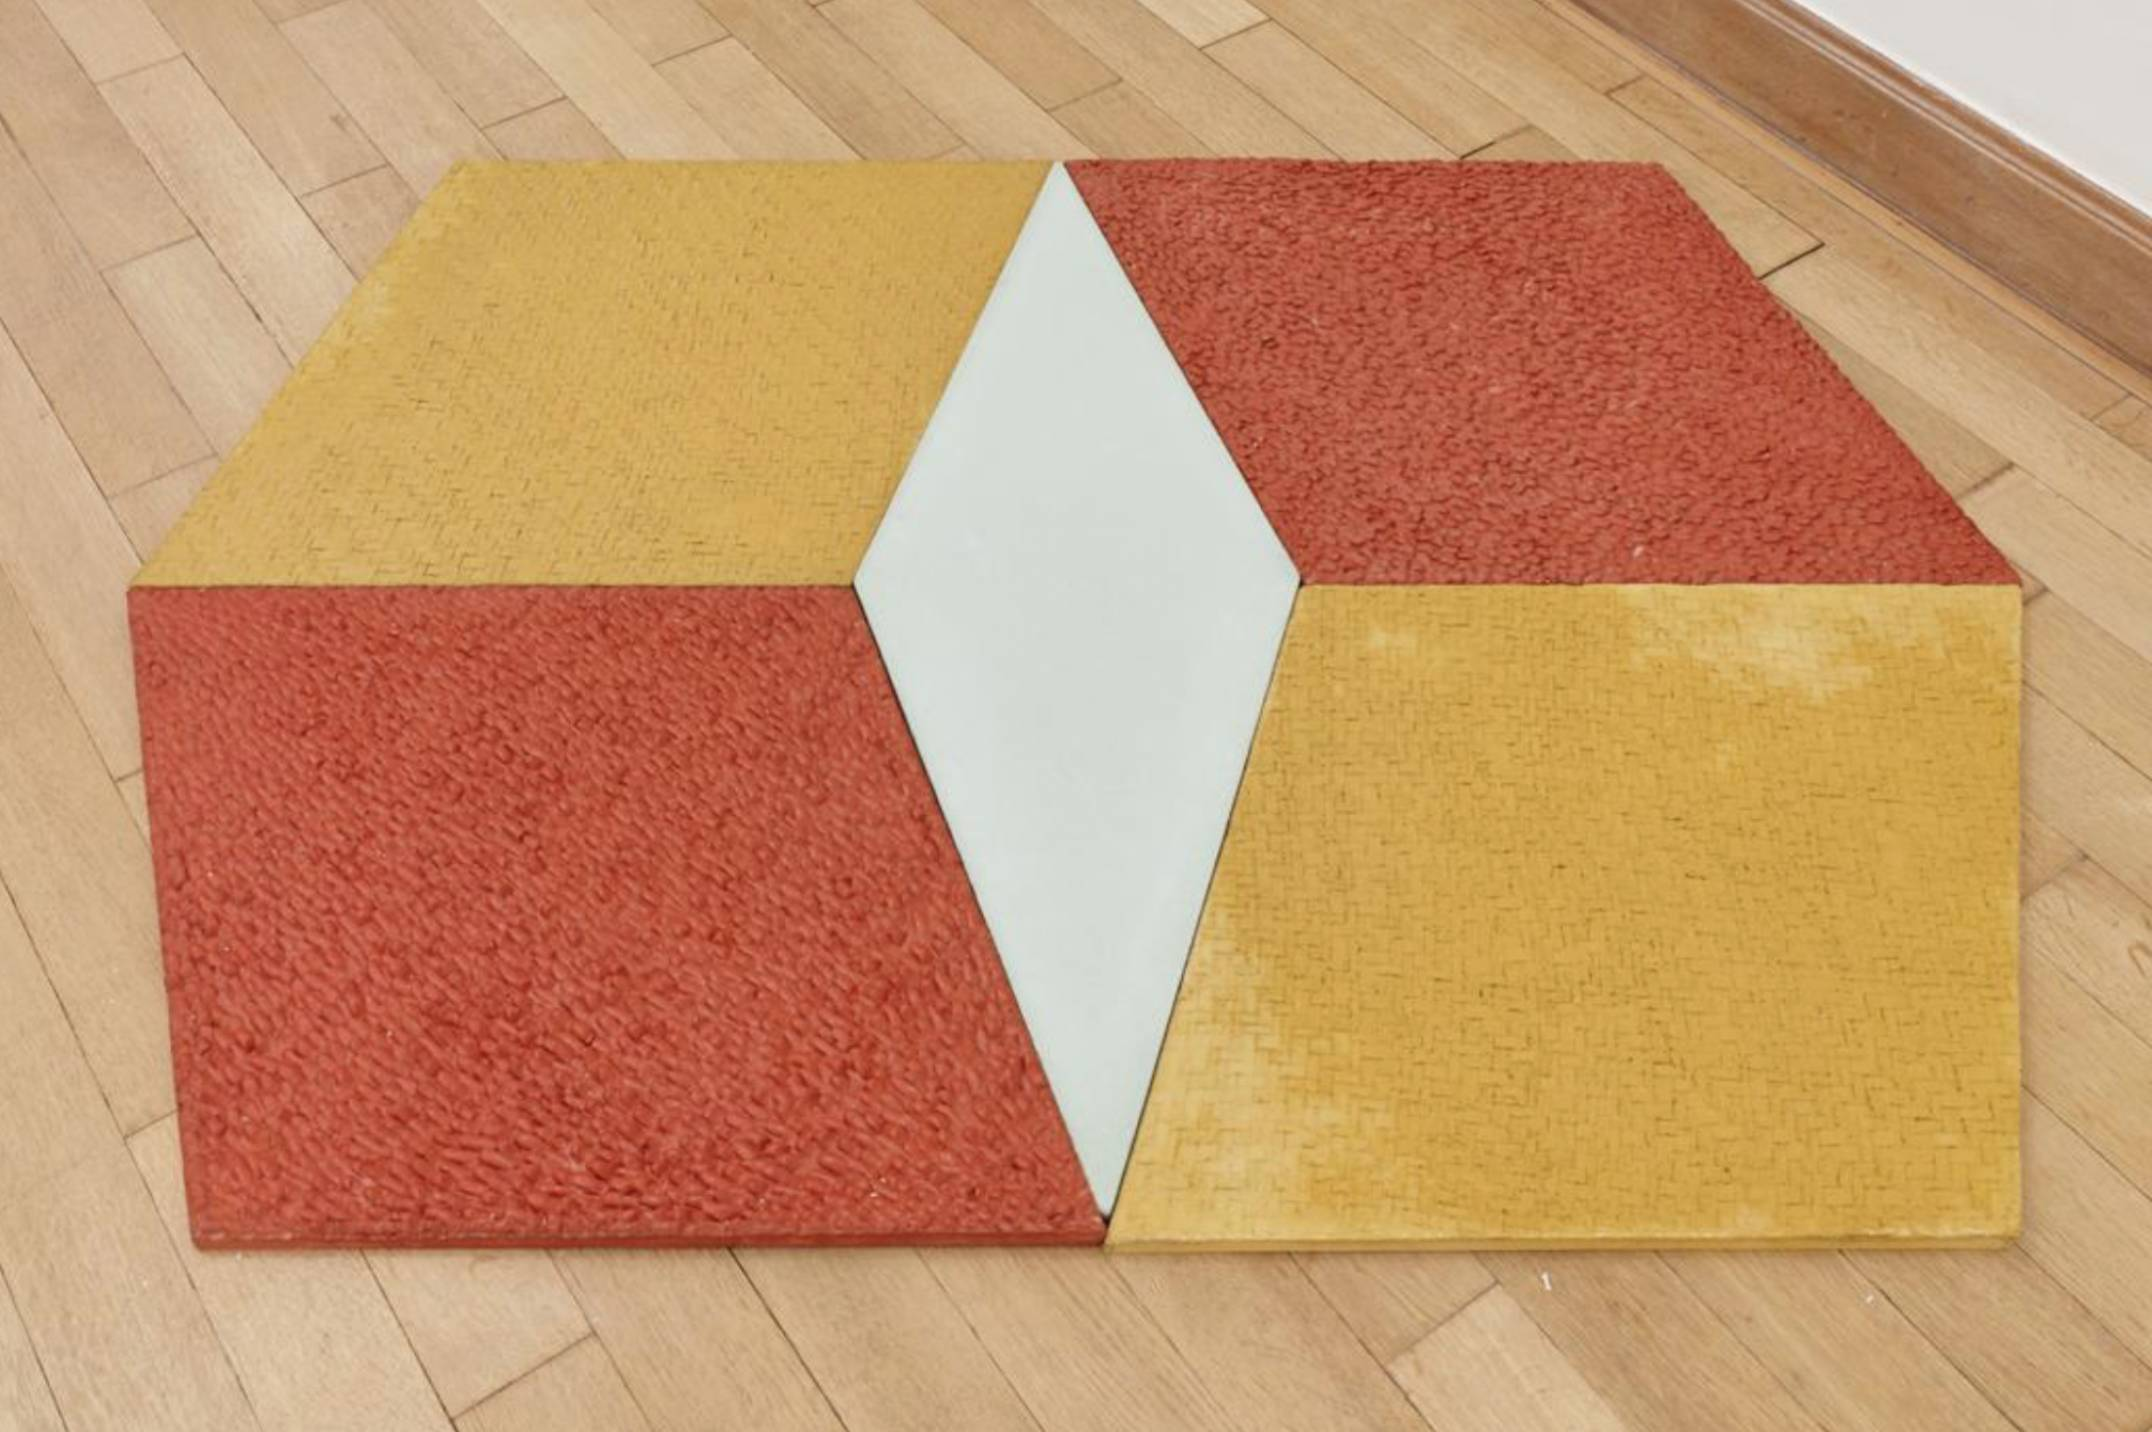 Mariana Castillo Deball, <em>Petate, Xipe, Turquesa, Xipe, Petate, </em>2017, colored concrete tiles with relief, 158 × 114 cm - Mendes Wood DM